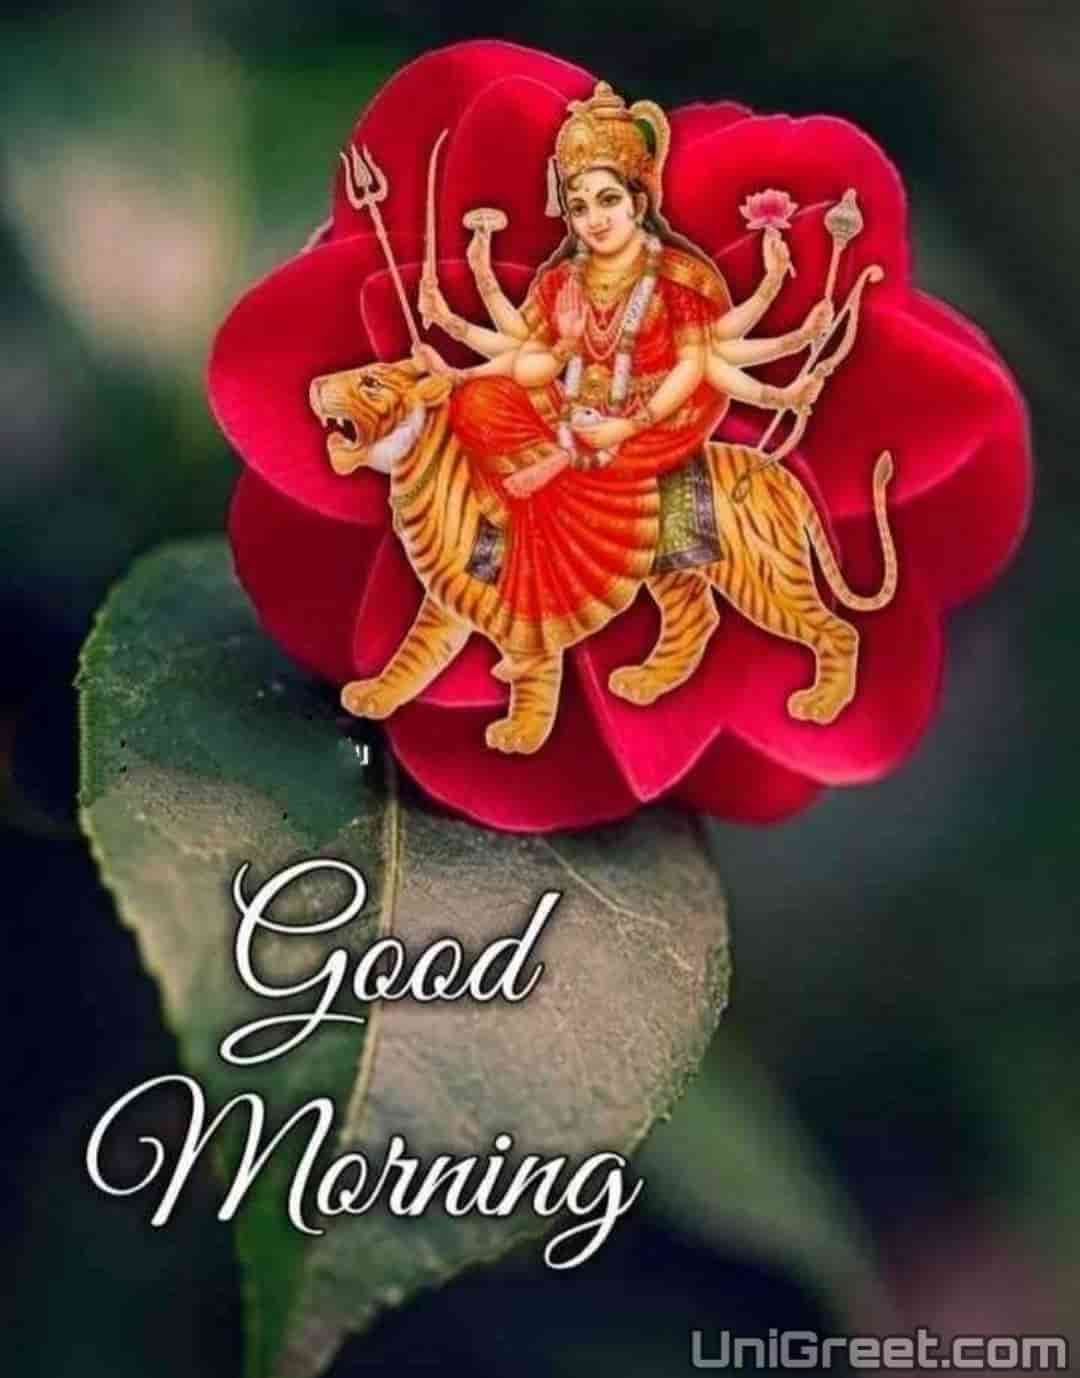 Good morning durga mata